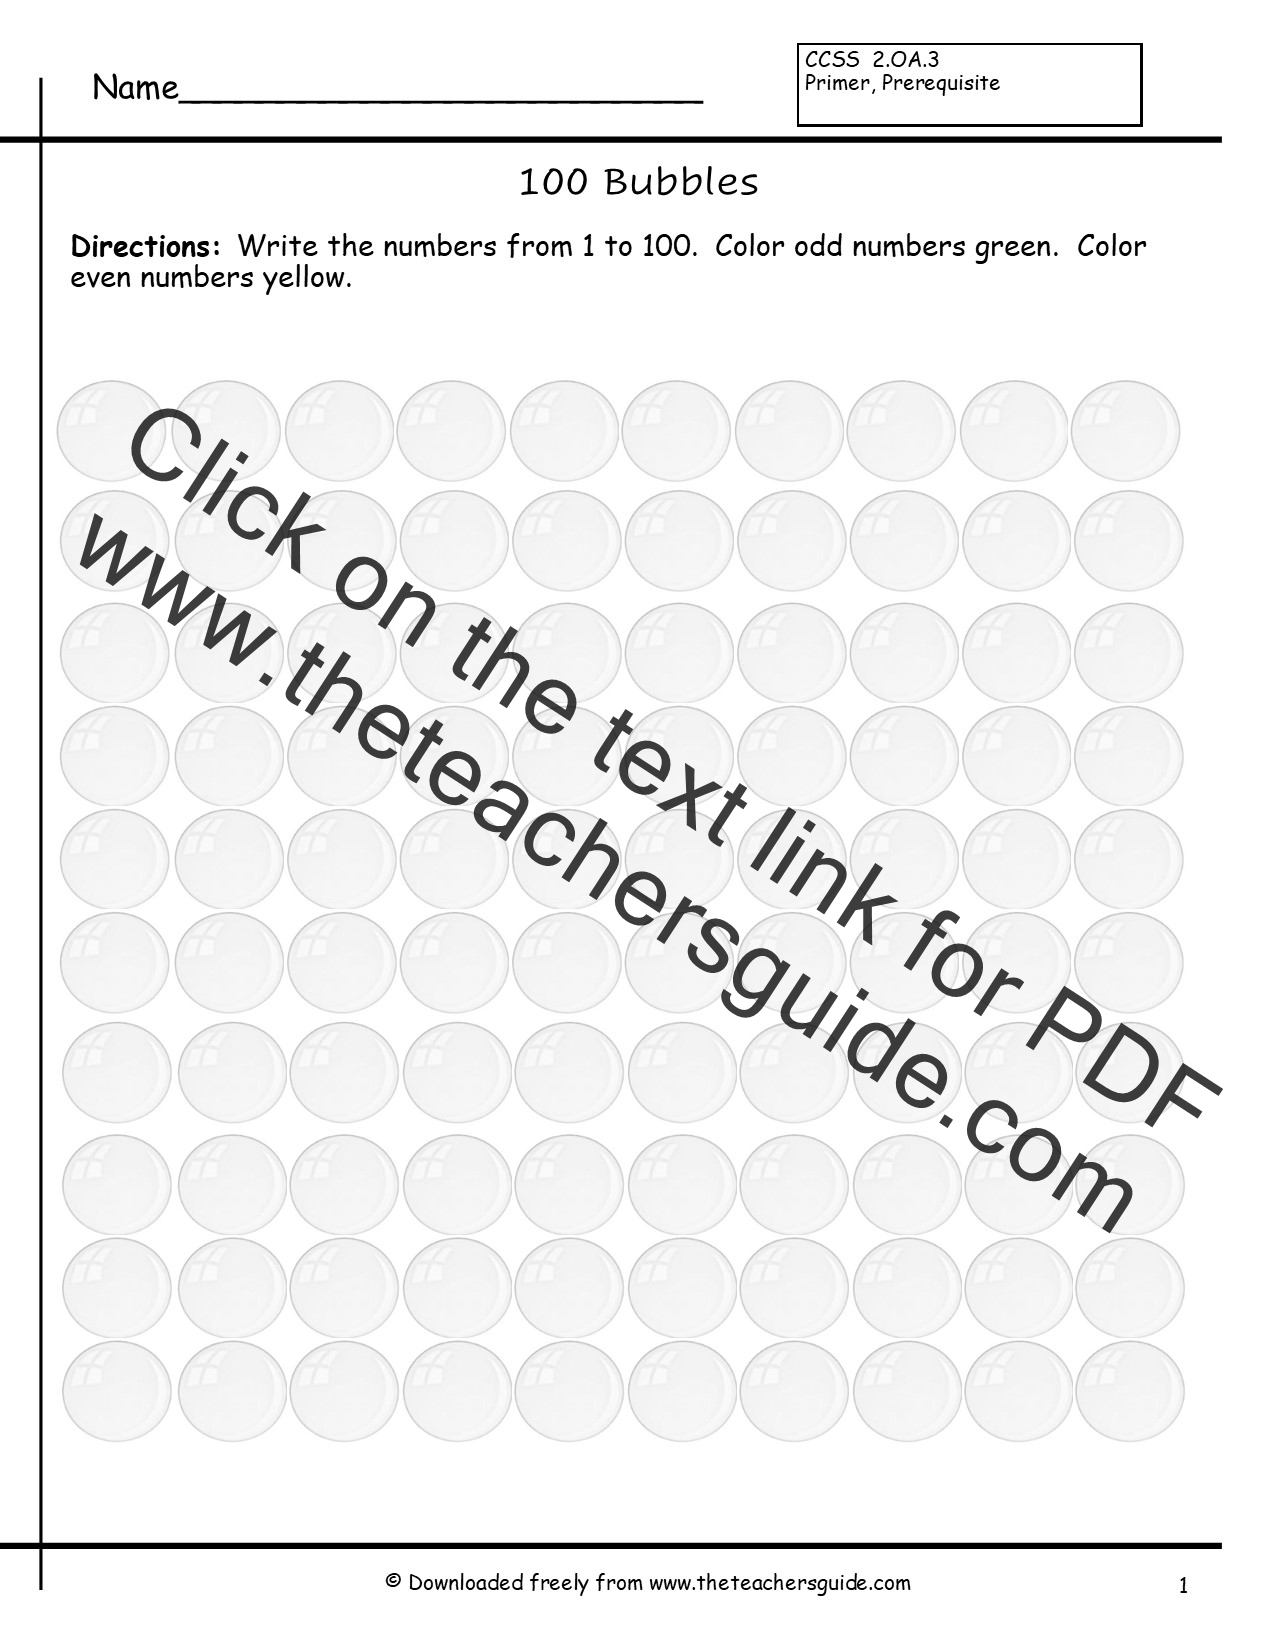 Even and Odd Numbers Worksheets from The Teacher's Guide